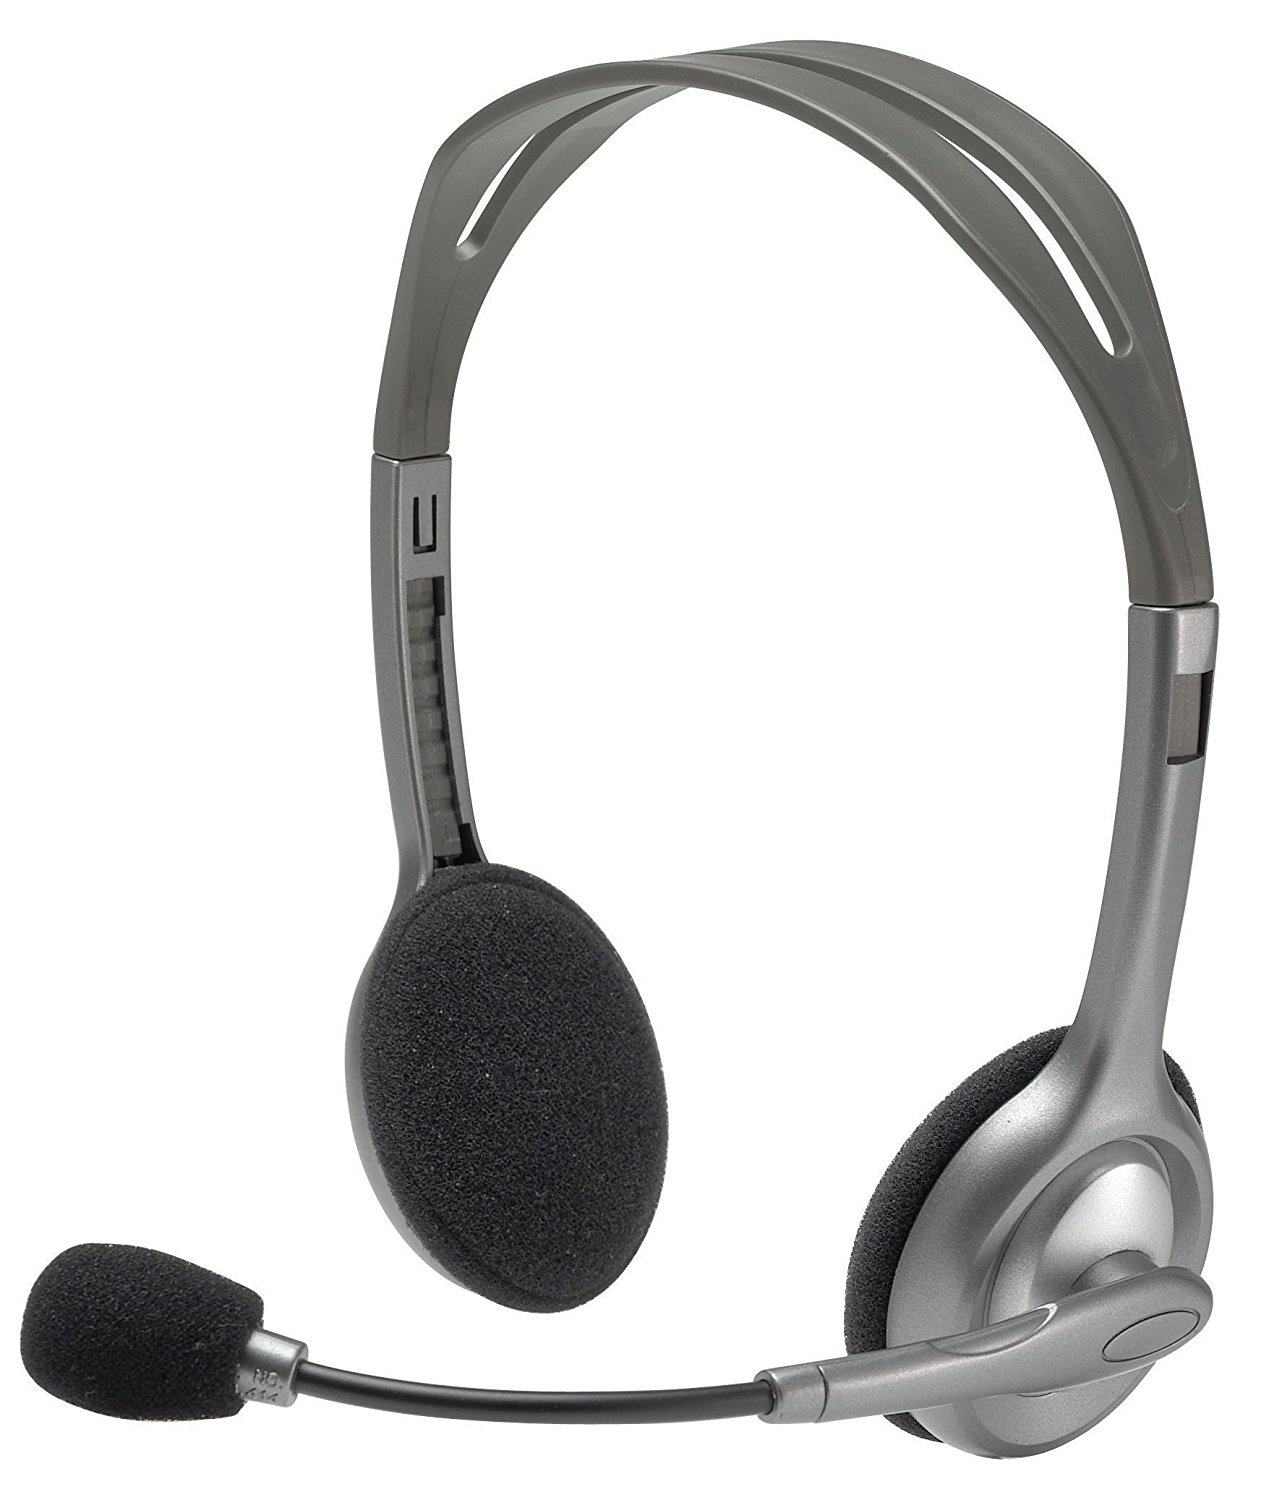 Logitech H110 Stereo Headset, Grey, Stereo, USB Headset for Windows and for Mac|Headphone/Headset| - AliExpress